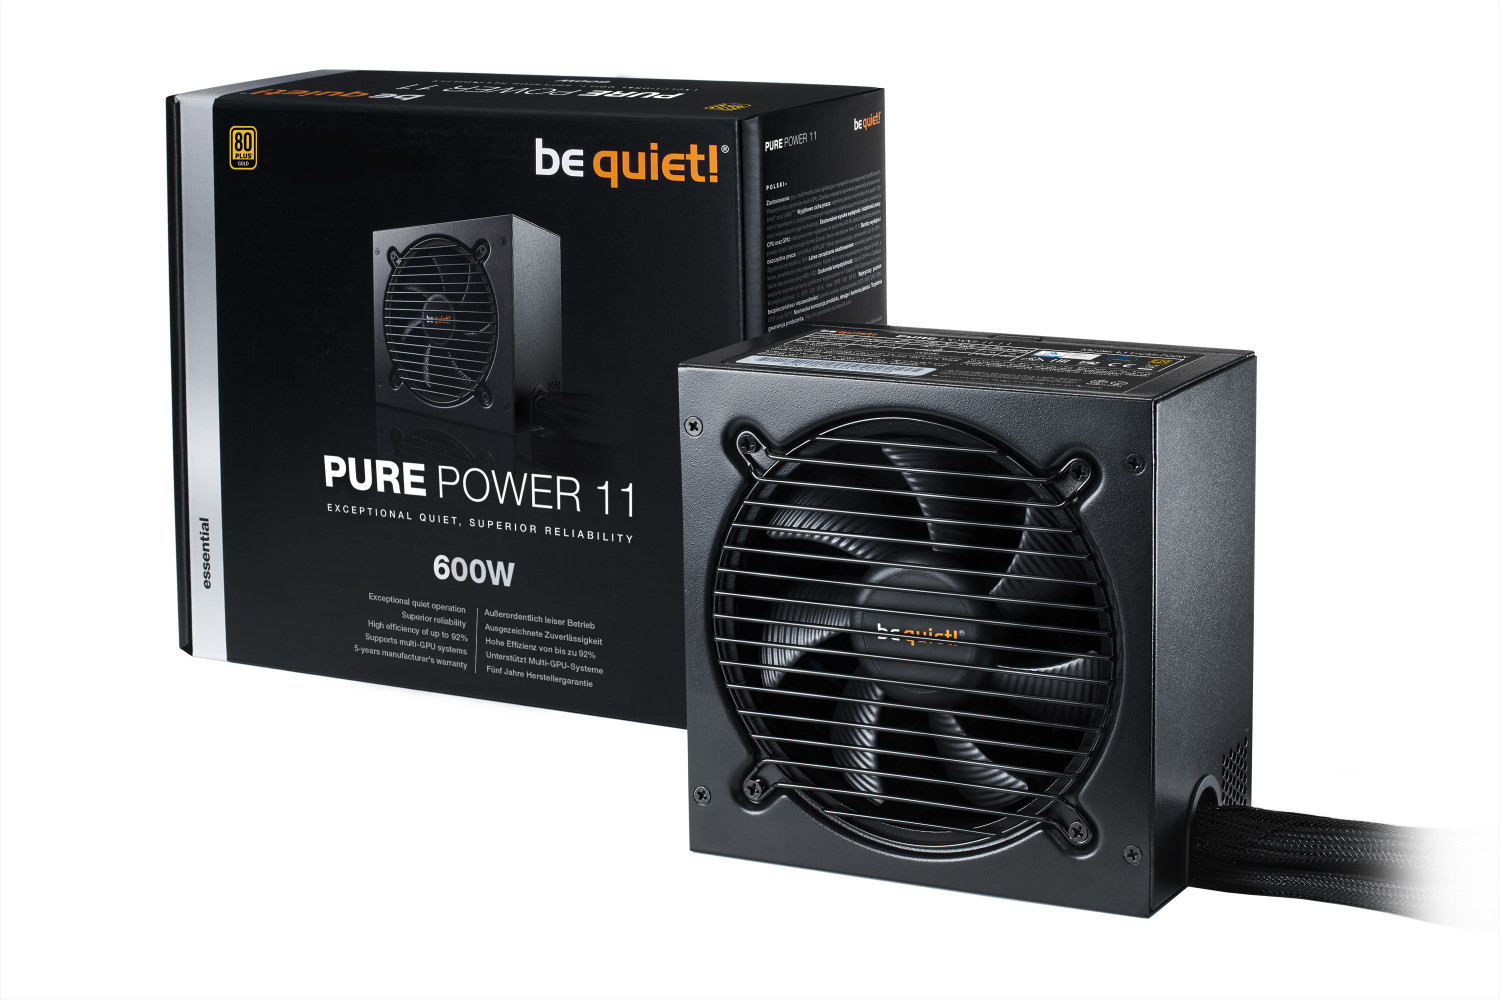 Image of be quiet! Pure Power 11 700W